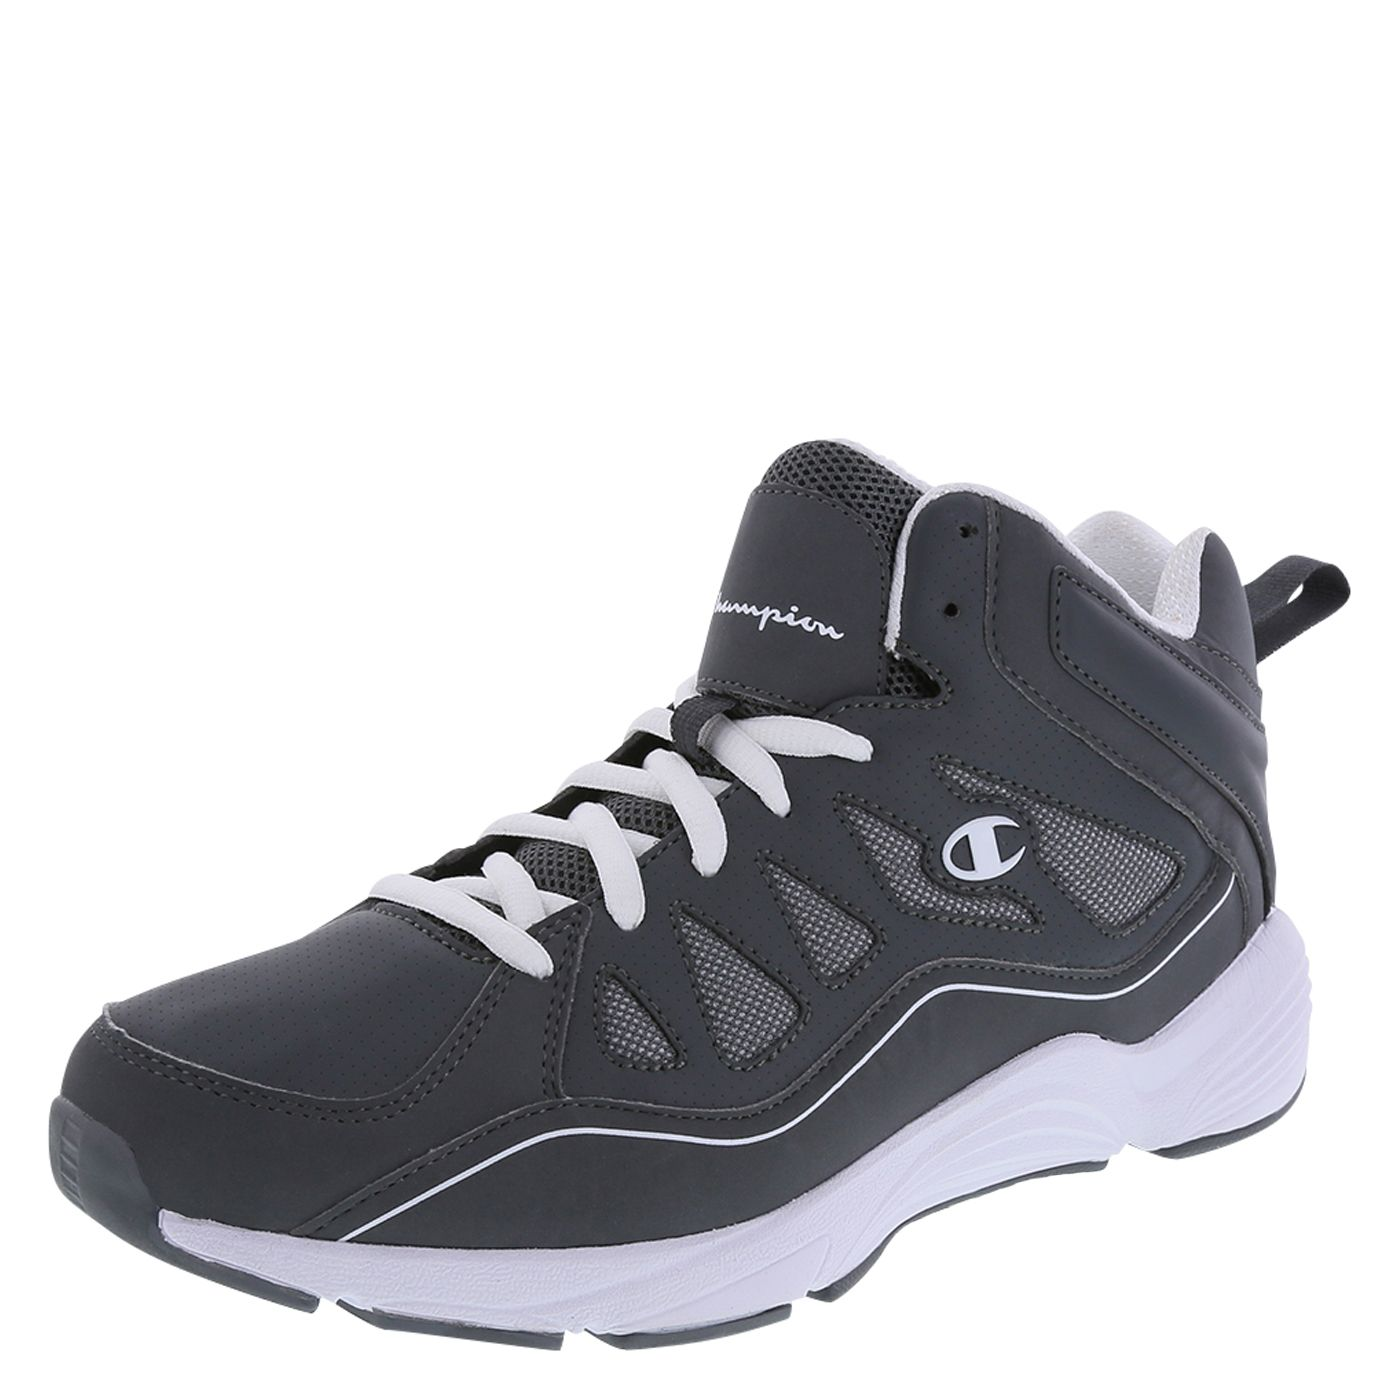 bade5aa98 The Playmaker basketball shoe will keep him ready on or off the court.